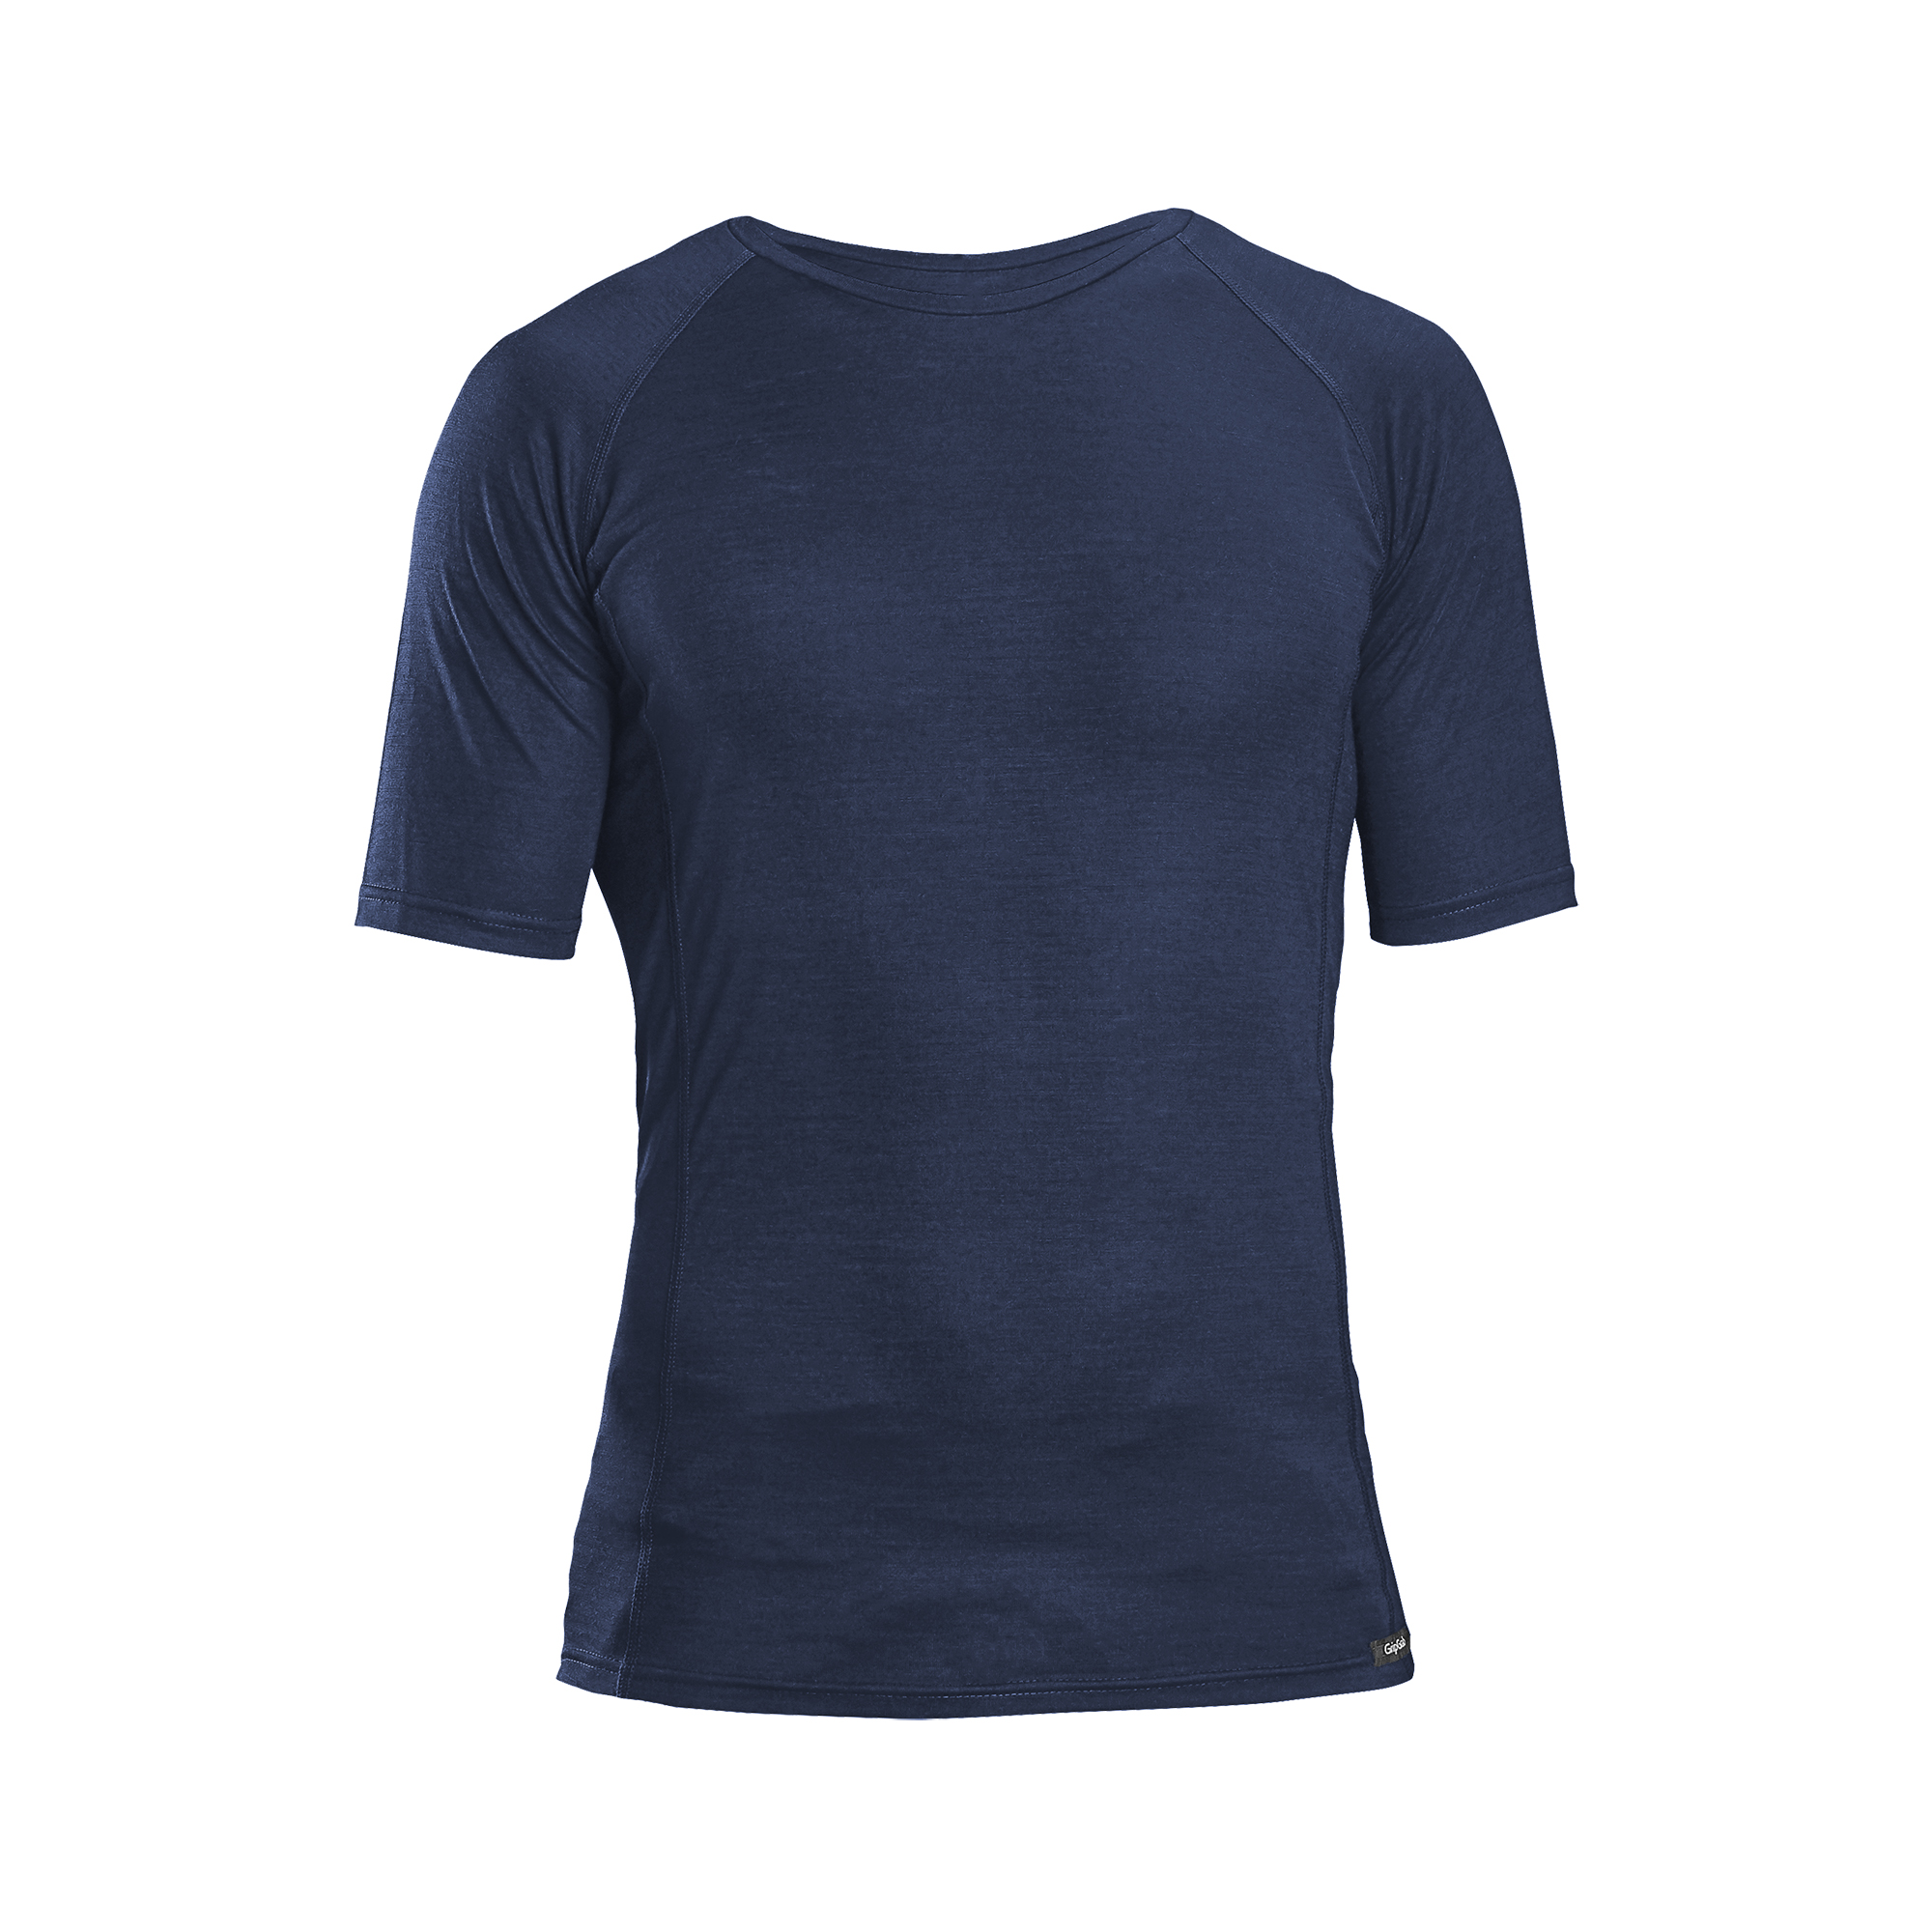 GripGrab Merino Polyfiber Base Layer - Svedundertrøje - Navy blå | Base layers